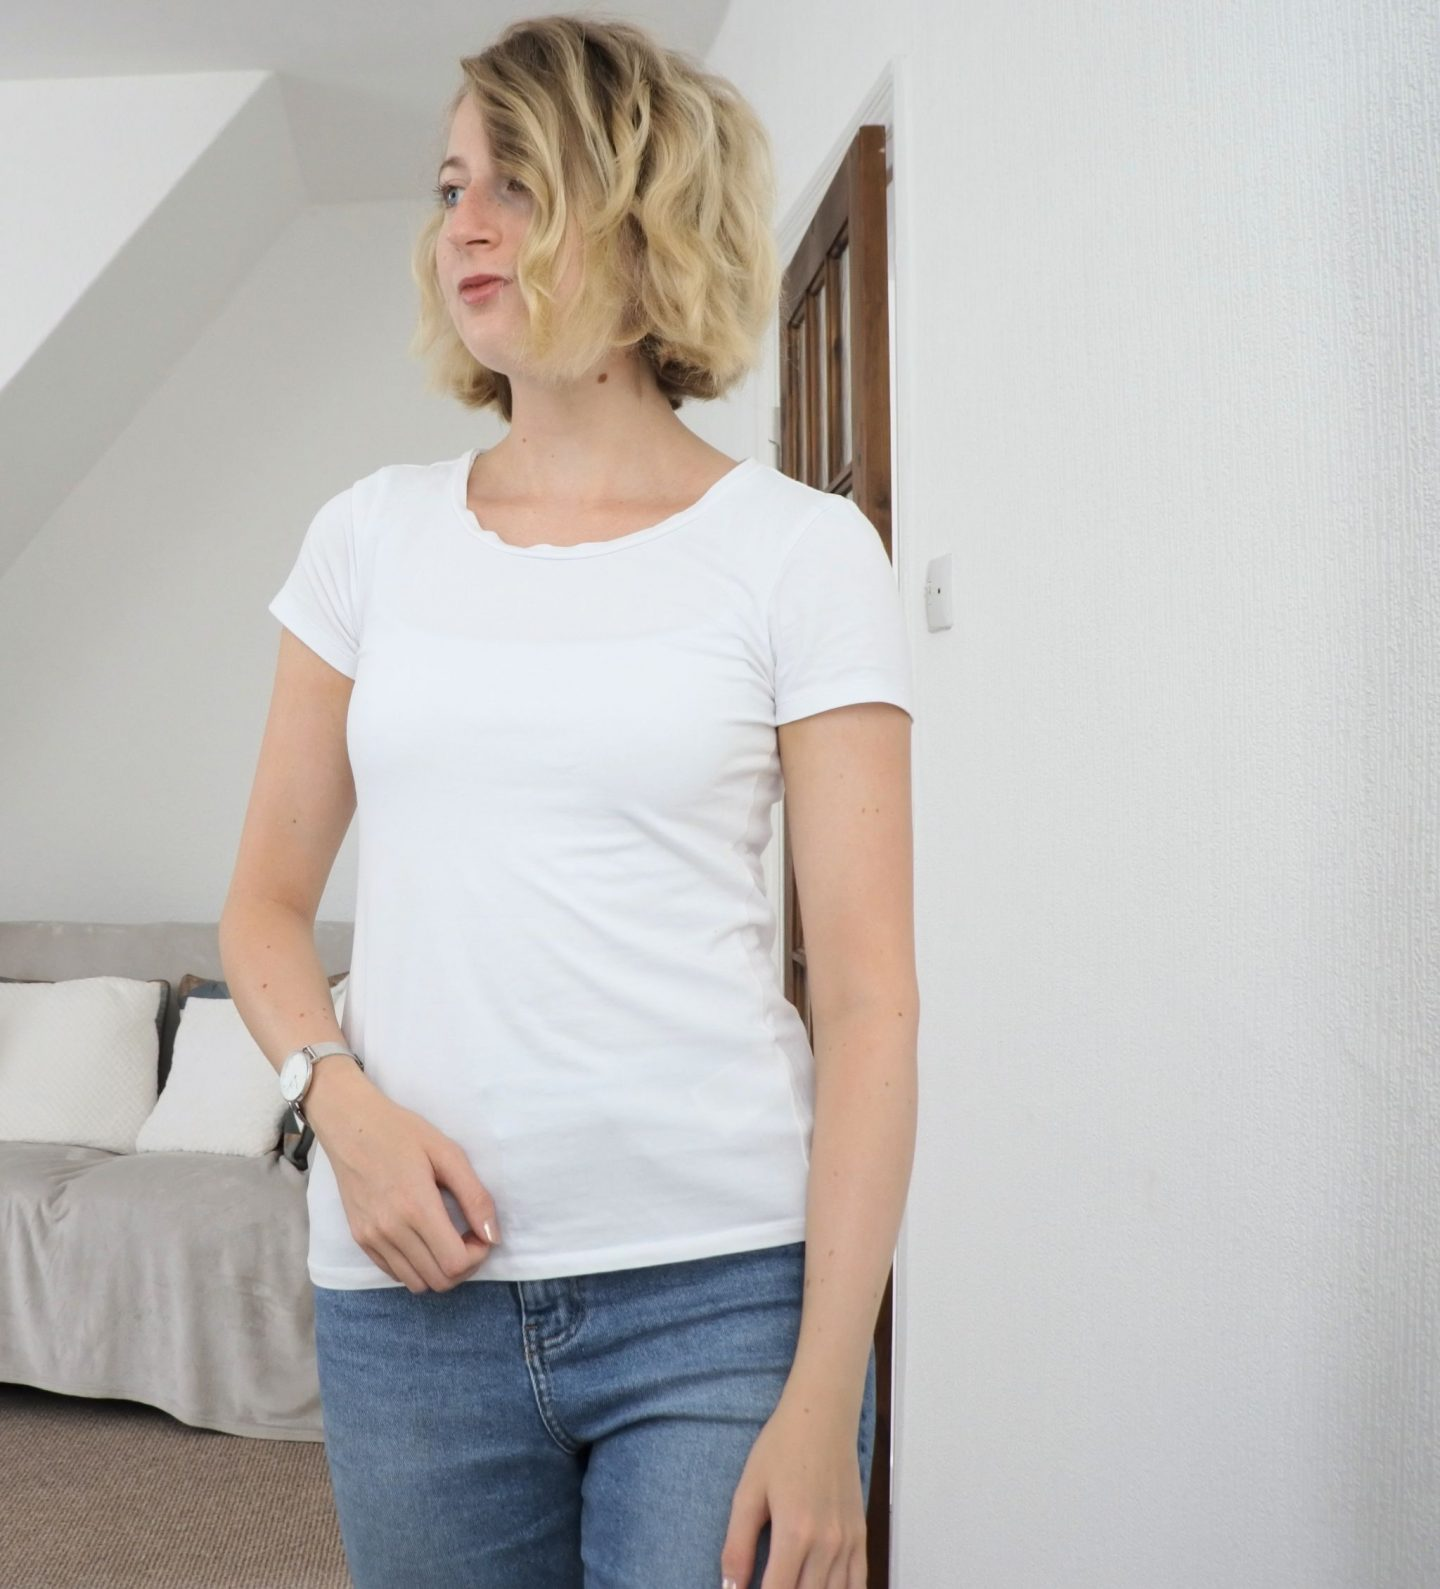 styling mom jeans look one casual t shirt